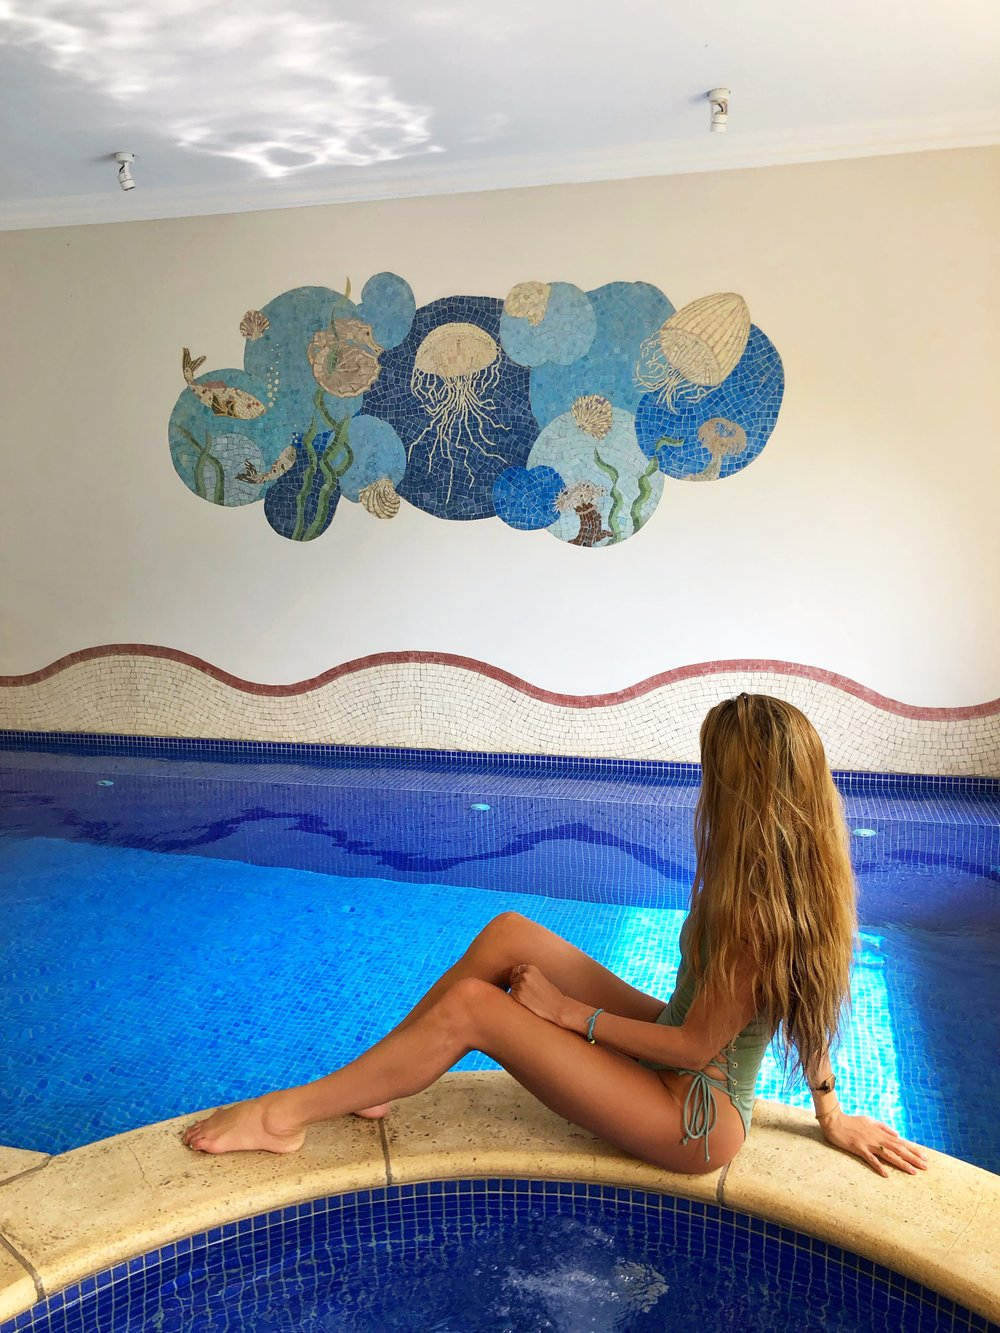 Pool in the Spa @yoga_ky